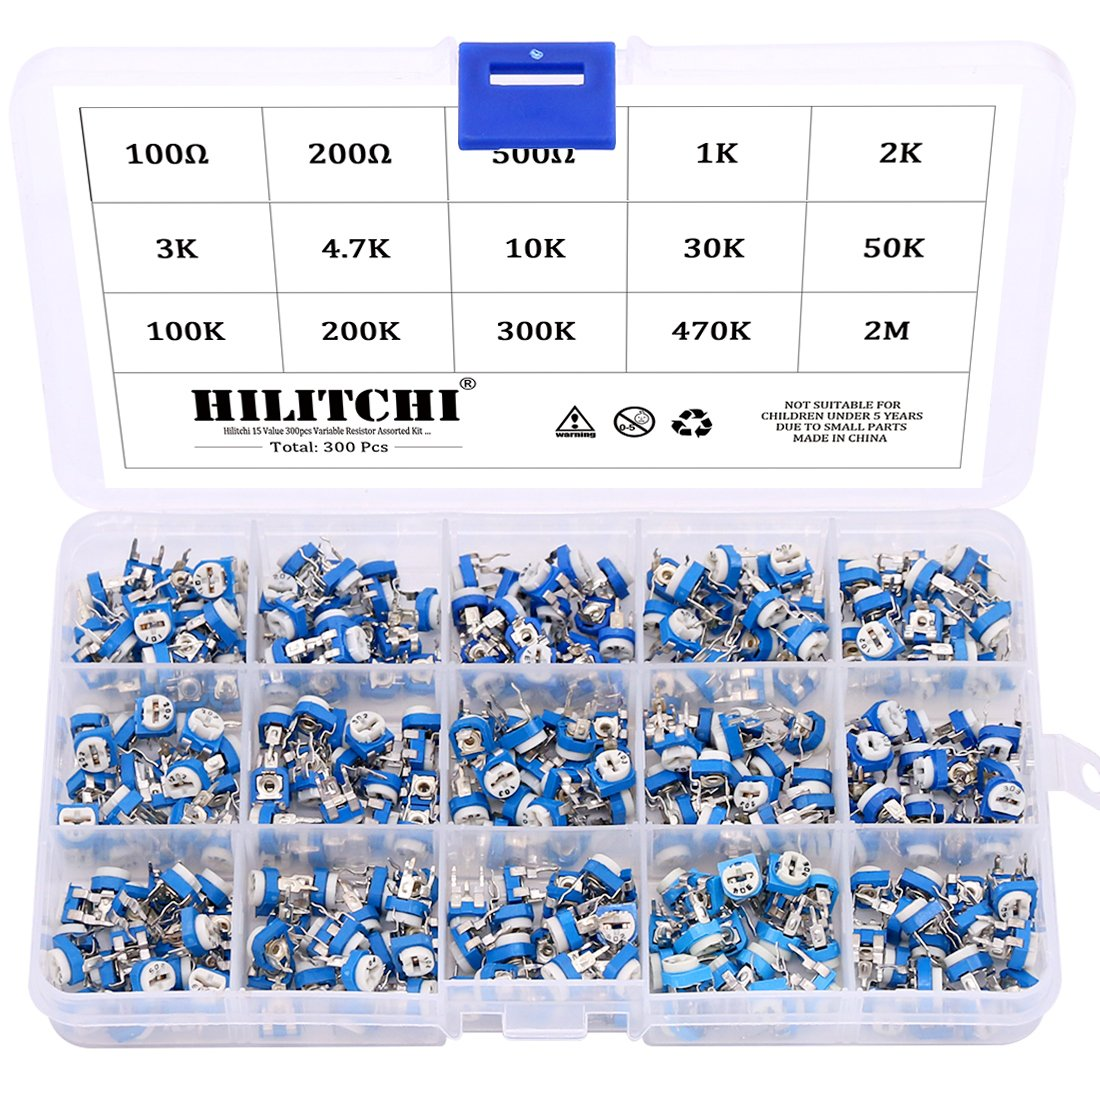 Hilitchi 15 Value 300pcs Variable Resistor Assorted Kit